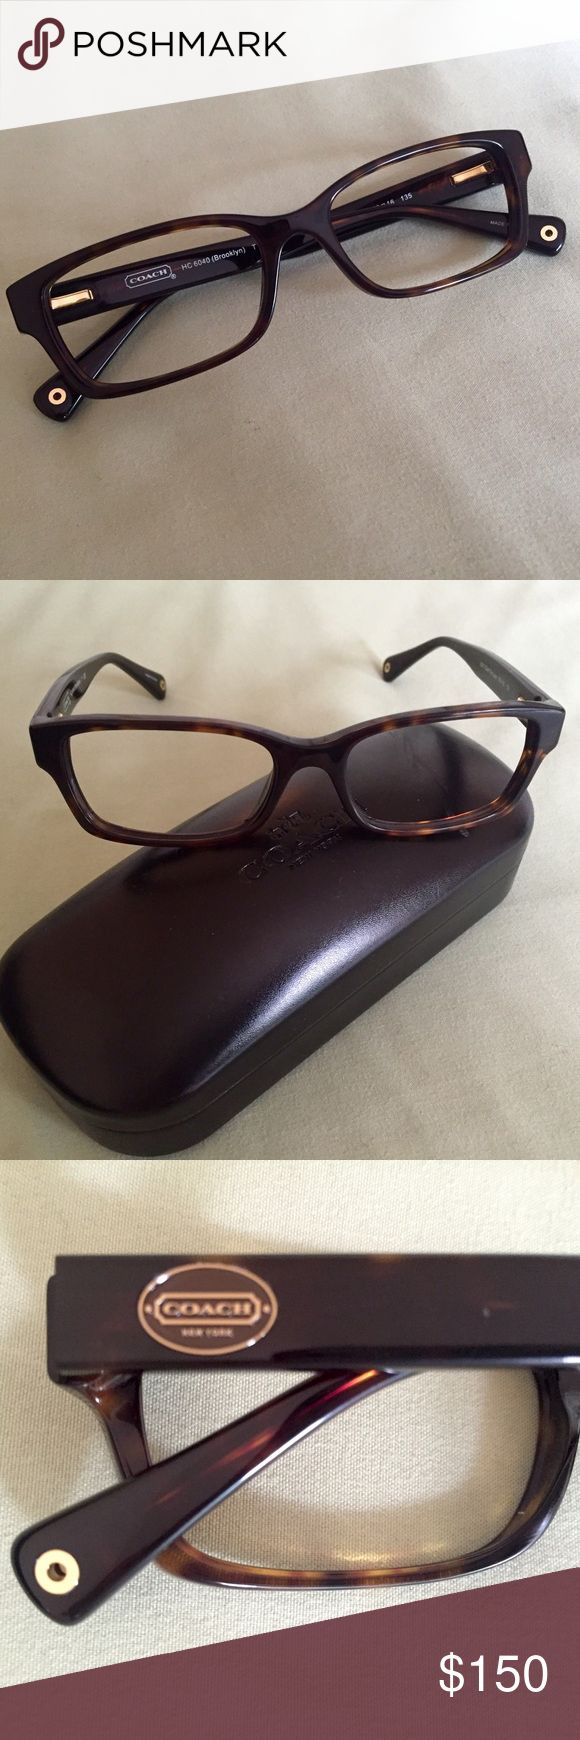 .:COACH RX GLASSES FRAME, DARK TORTOISE:. Never used, I was going to get lenses put in but decided to go for a different look. Unfortunately I waited too long to return it. Frame is in perfect condition. Eye size:50 bridge:16 temple:135. COACH HC 6040 (Brooklyn) Case is included, has small scuff on top right, see photo above. **Does not come with the original plastic lenses.** Coach Accessories Glasses